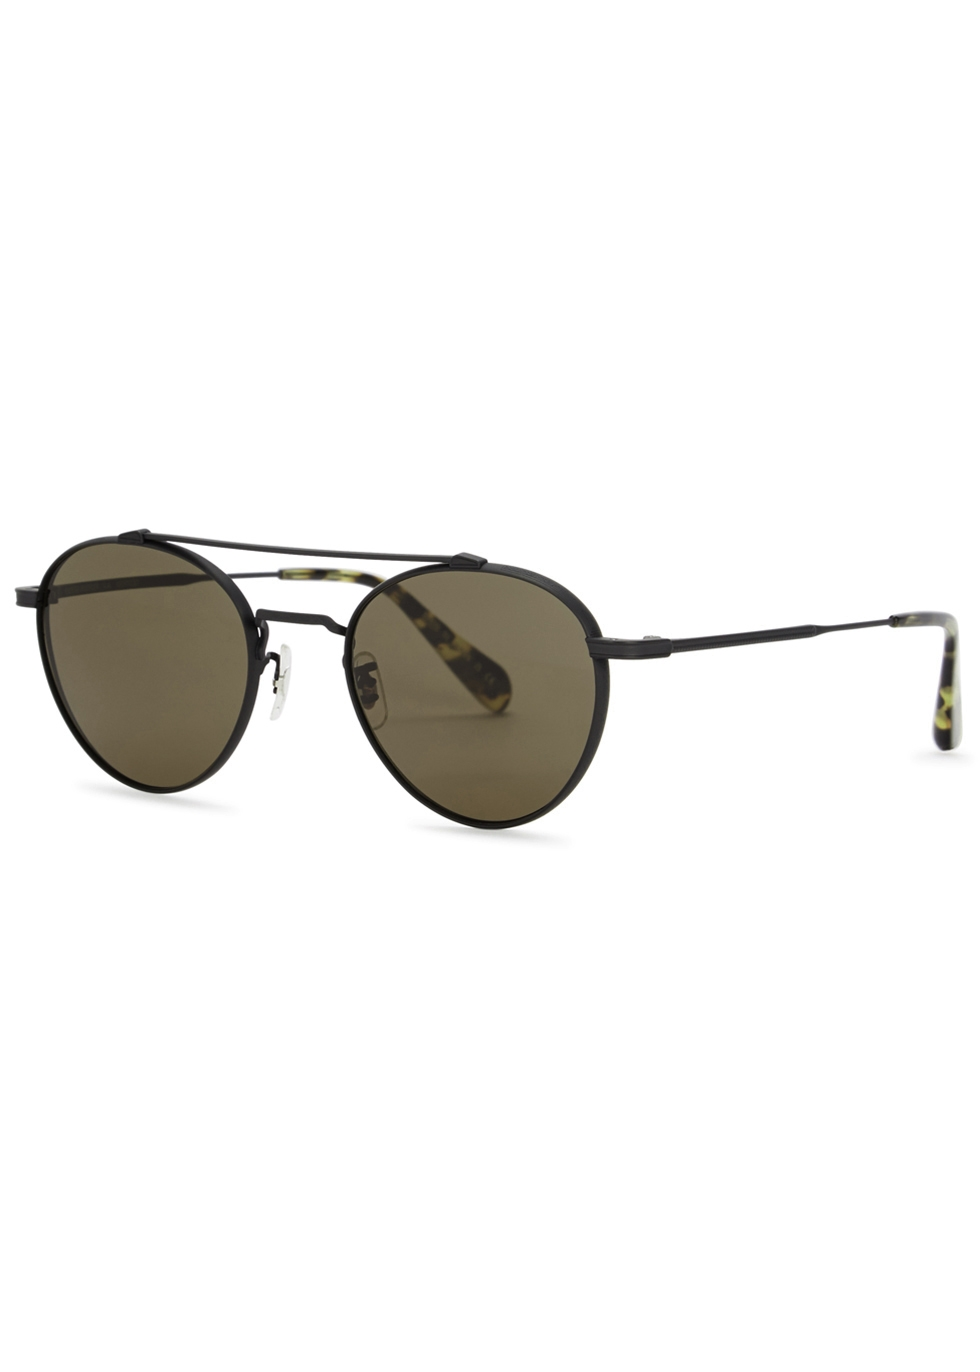 OLIVER PEOPLES MATTE BLACK ROUND-FRAME SUNGLASSES